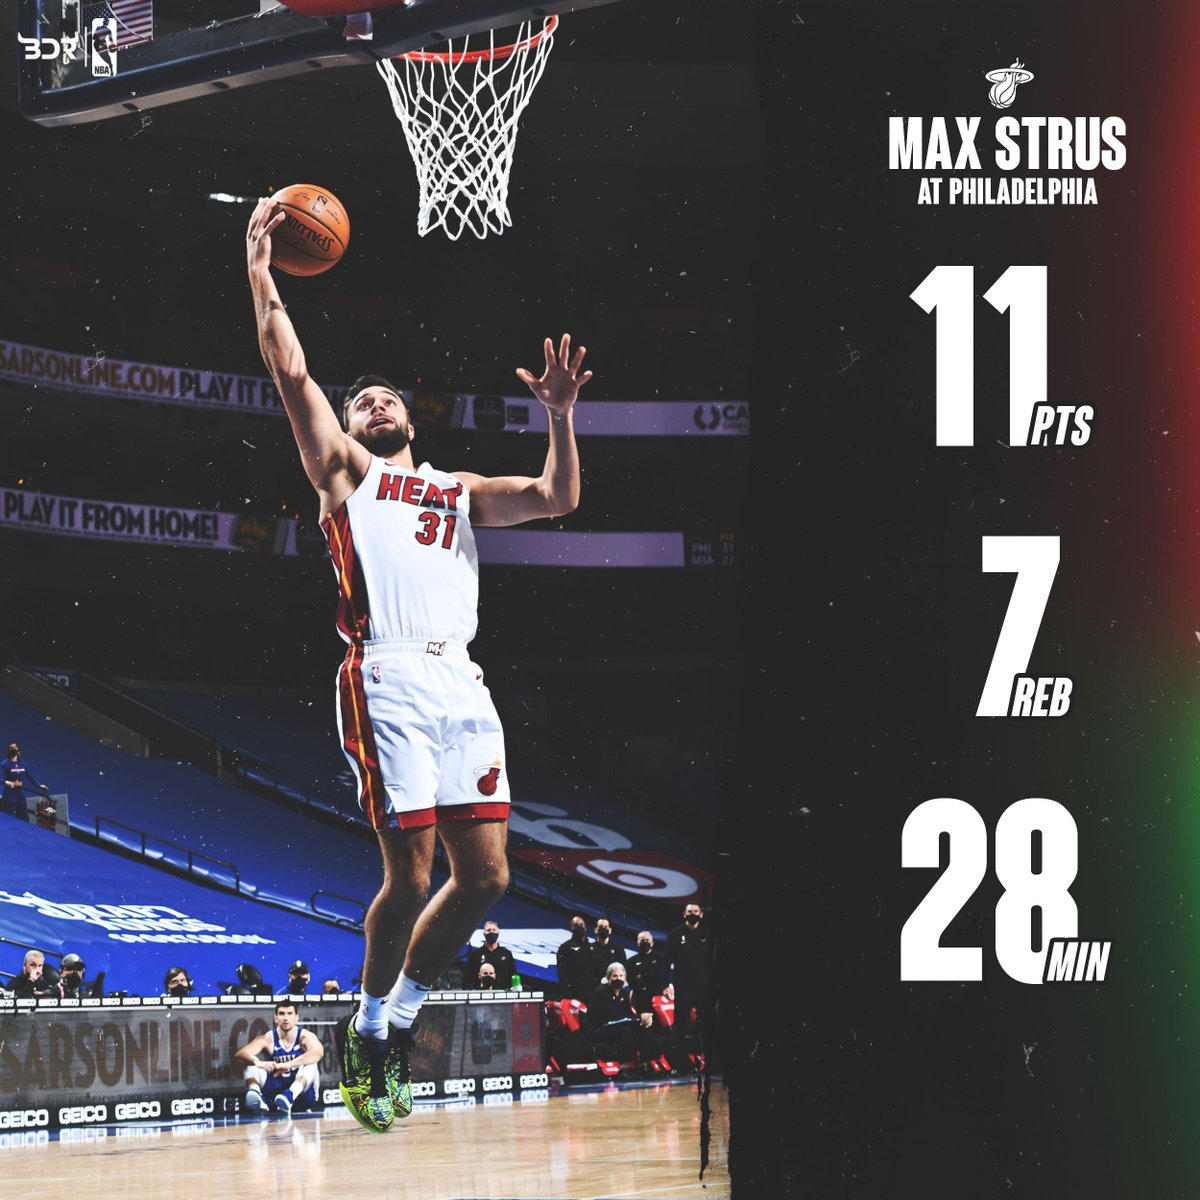 Former Blue Demon Max Strus put up career high numbers is points, minutes, and rebounds tonight. He finished the game with 11 points 7 rebounds 1 assist, and 1 steal in 28 minutes,   #HeatNation #playingpossessed #HEATTwitter